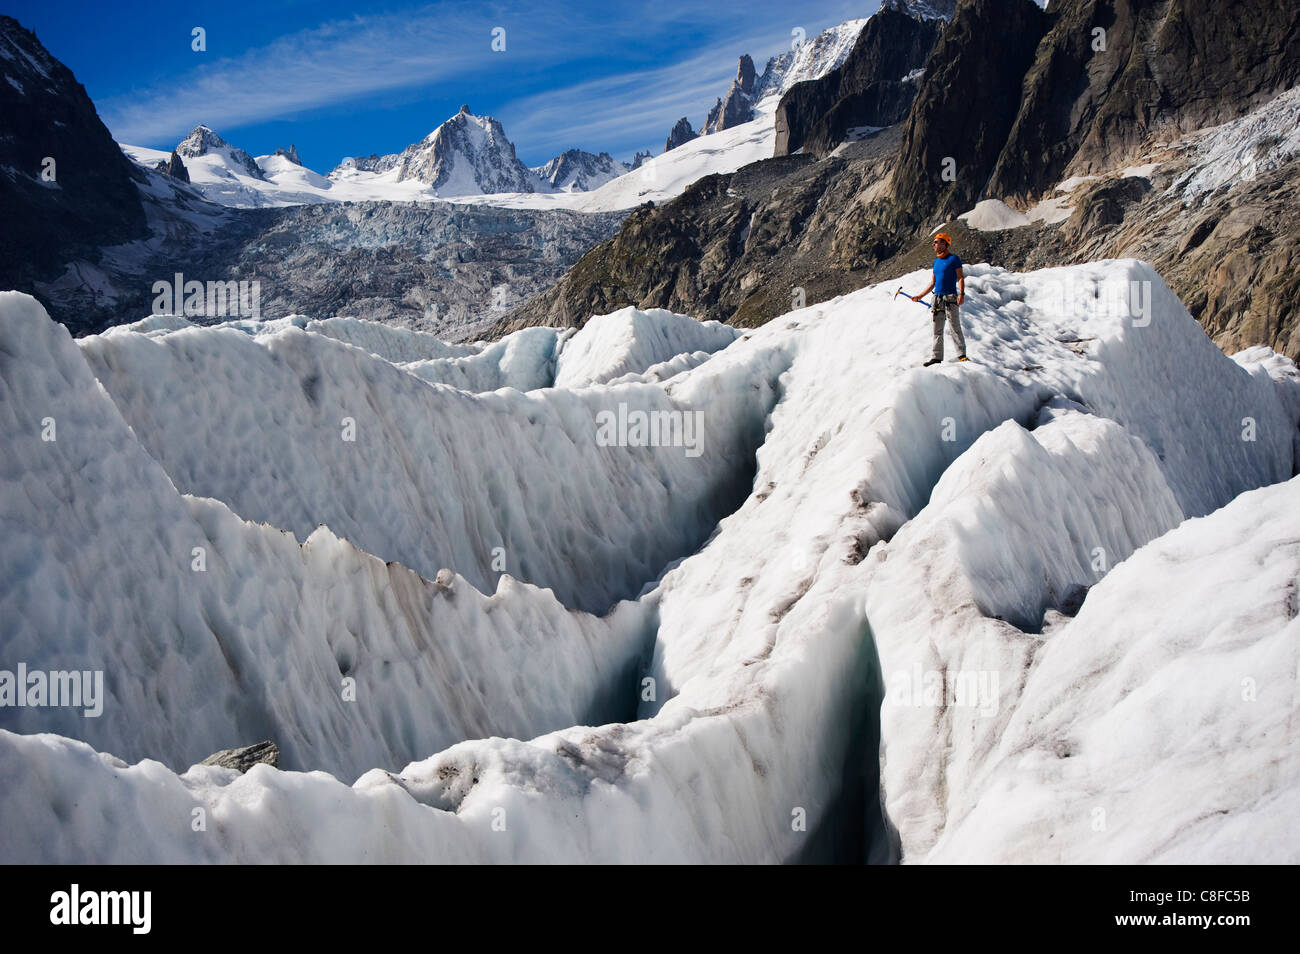 Aclimber in a crevasse field on Mer de Glace glacier, Mont Blanc range, Chamonix, French Alps, France Stock Photo